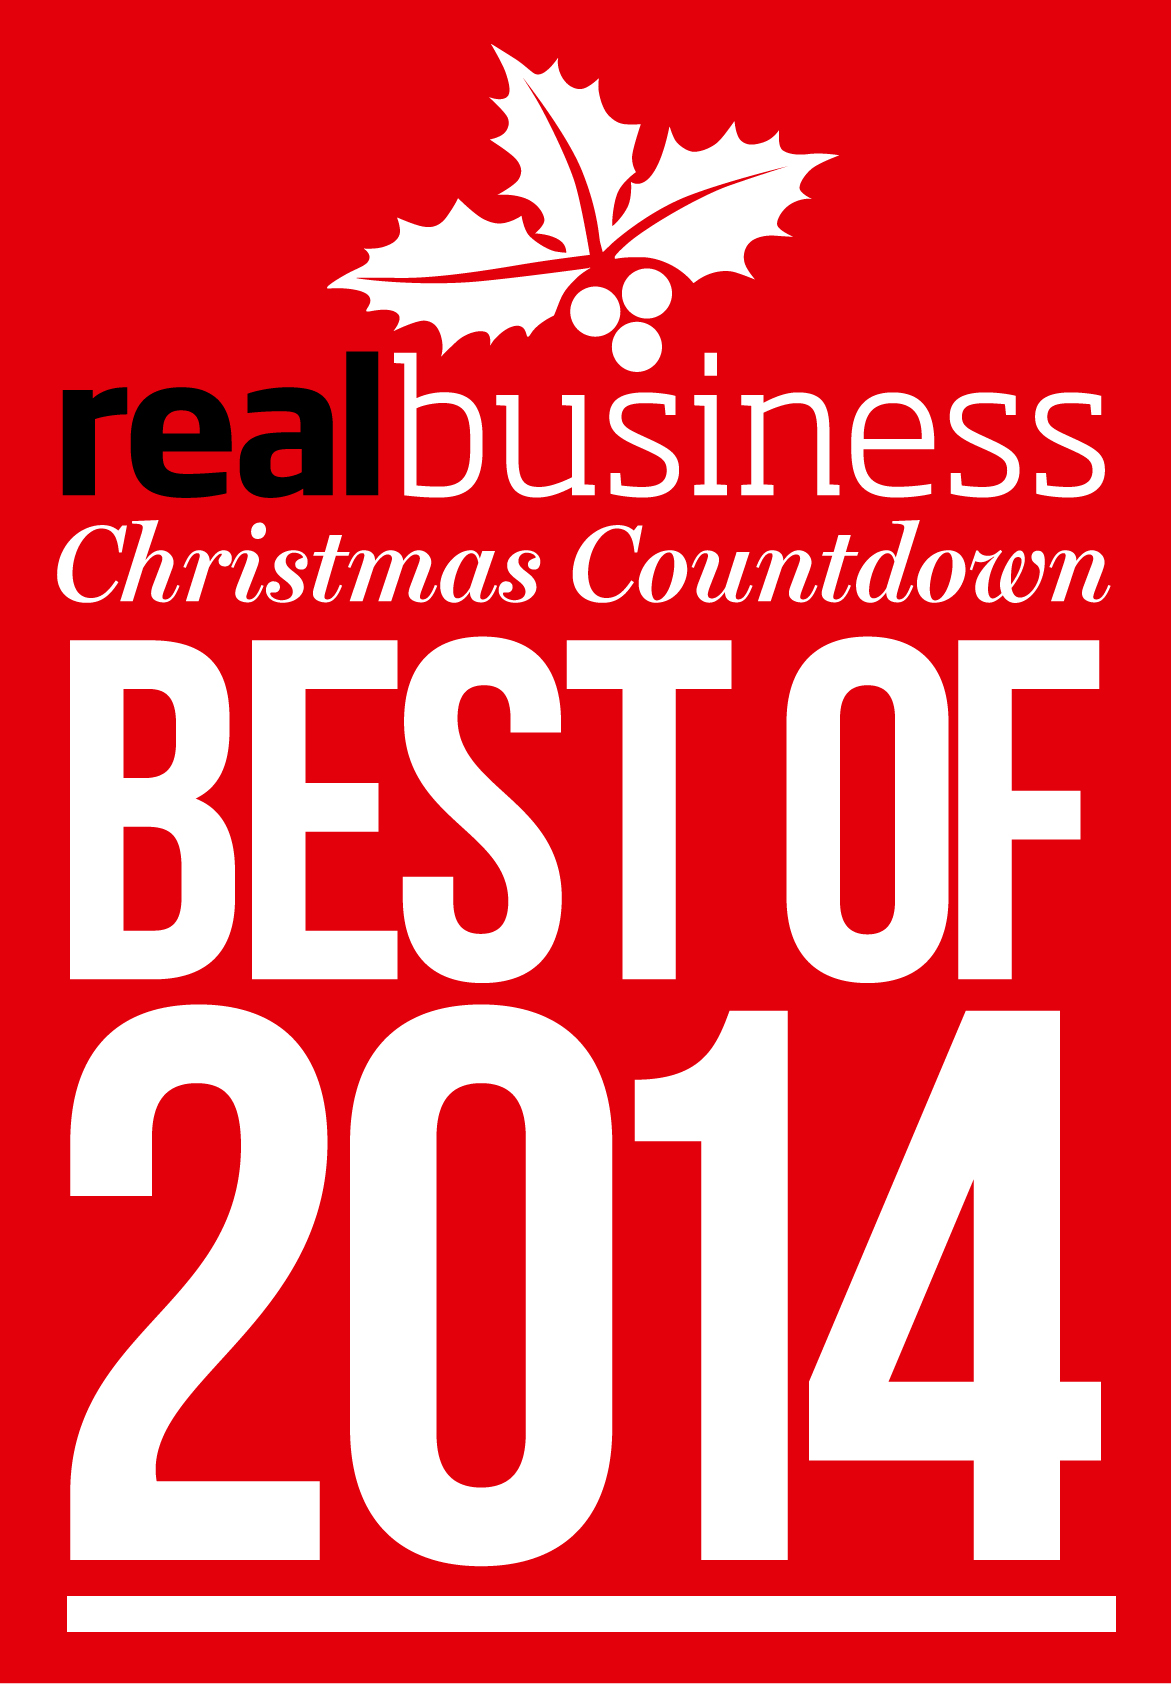 Real Business Christmas Countdown: The Best of 2014: 1 December